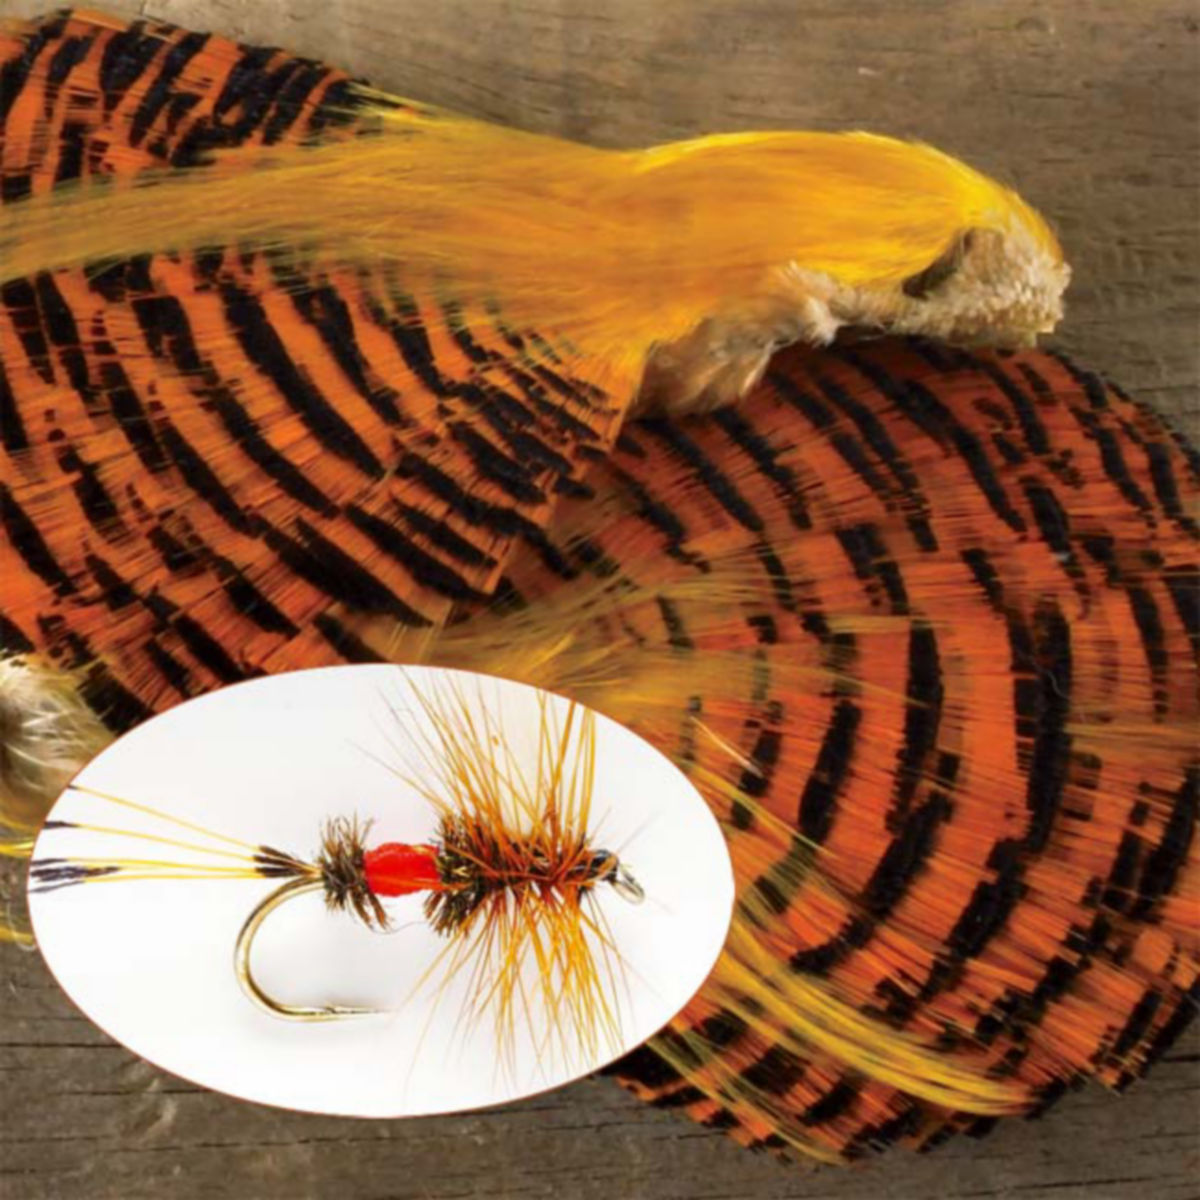 Golden Pheasant - image number 0